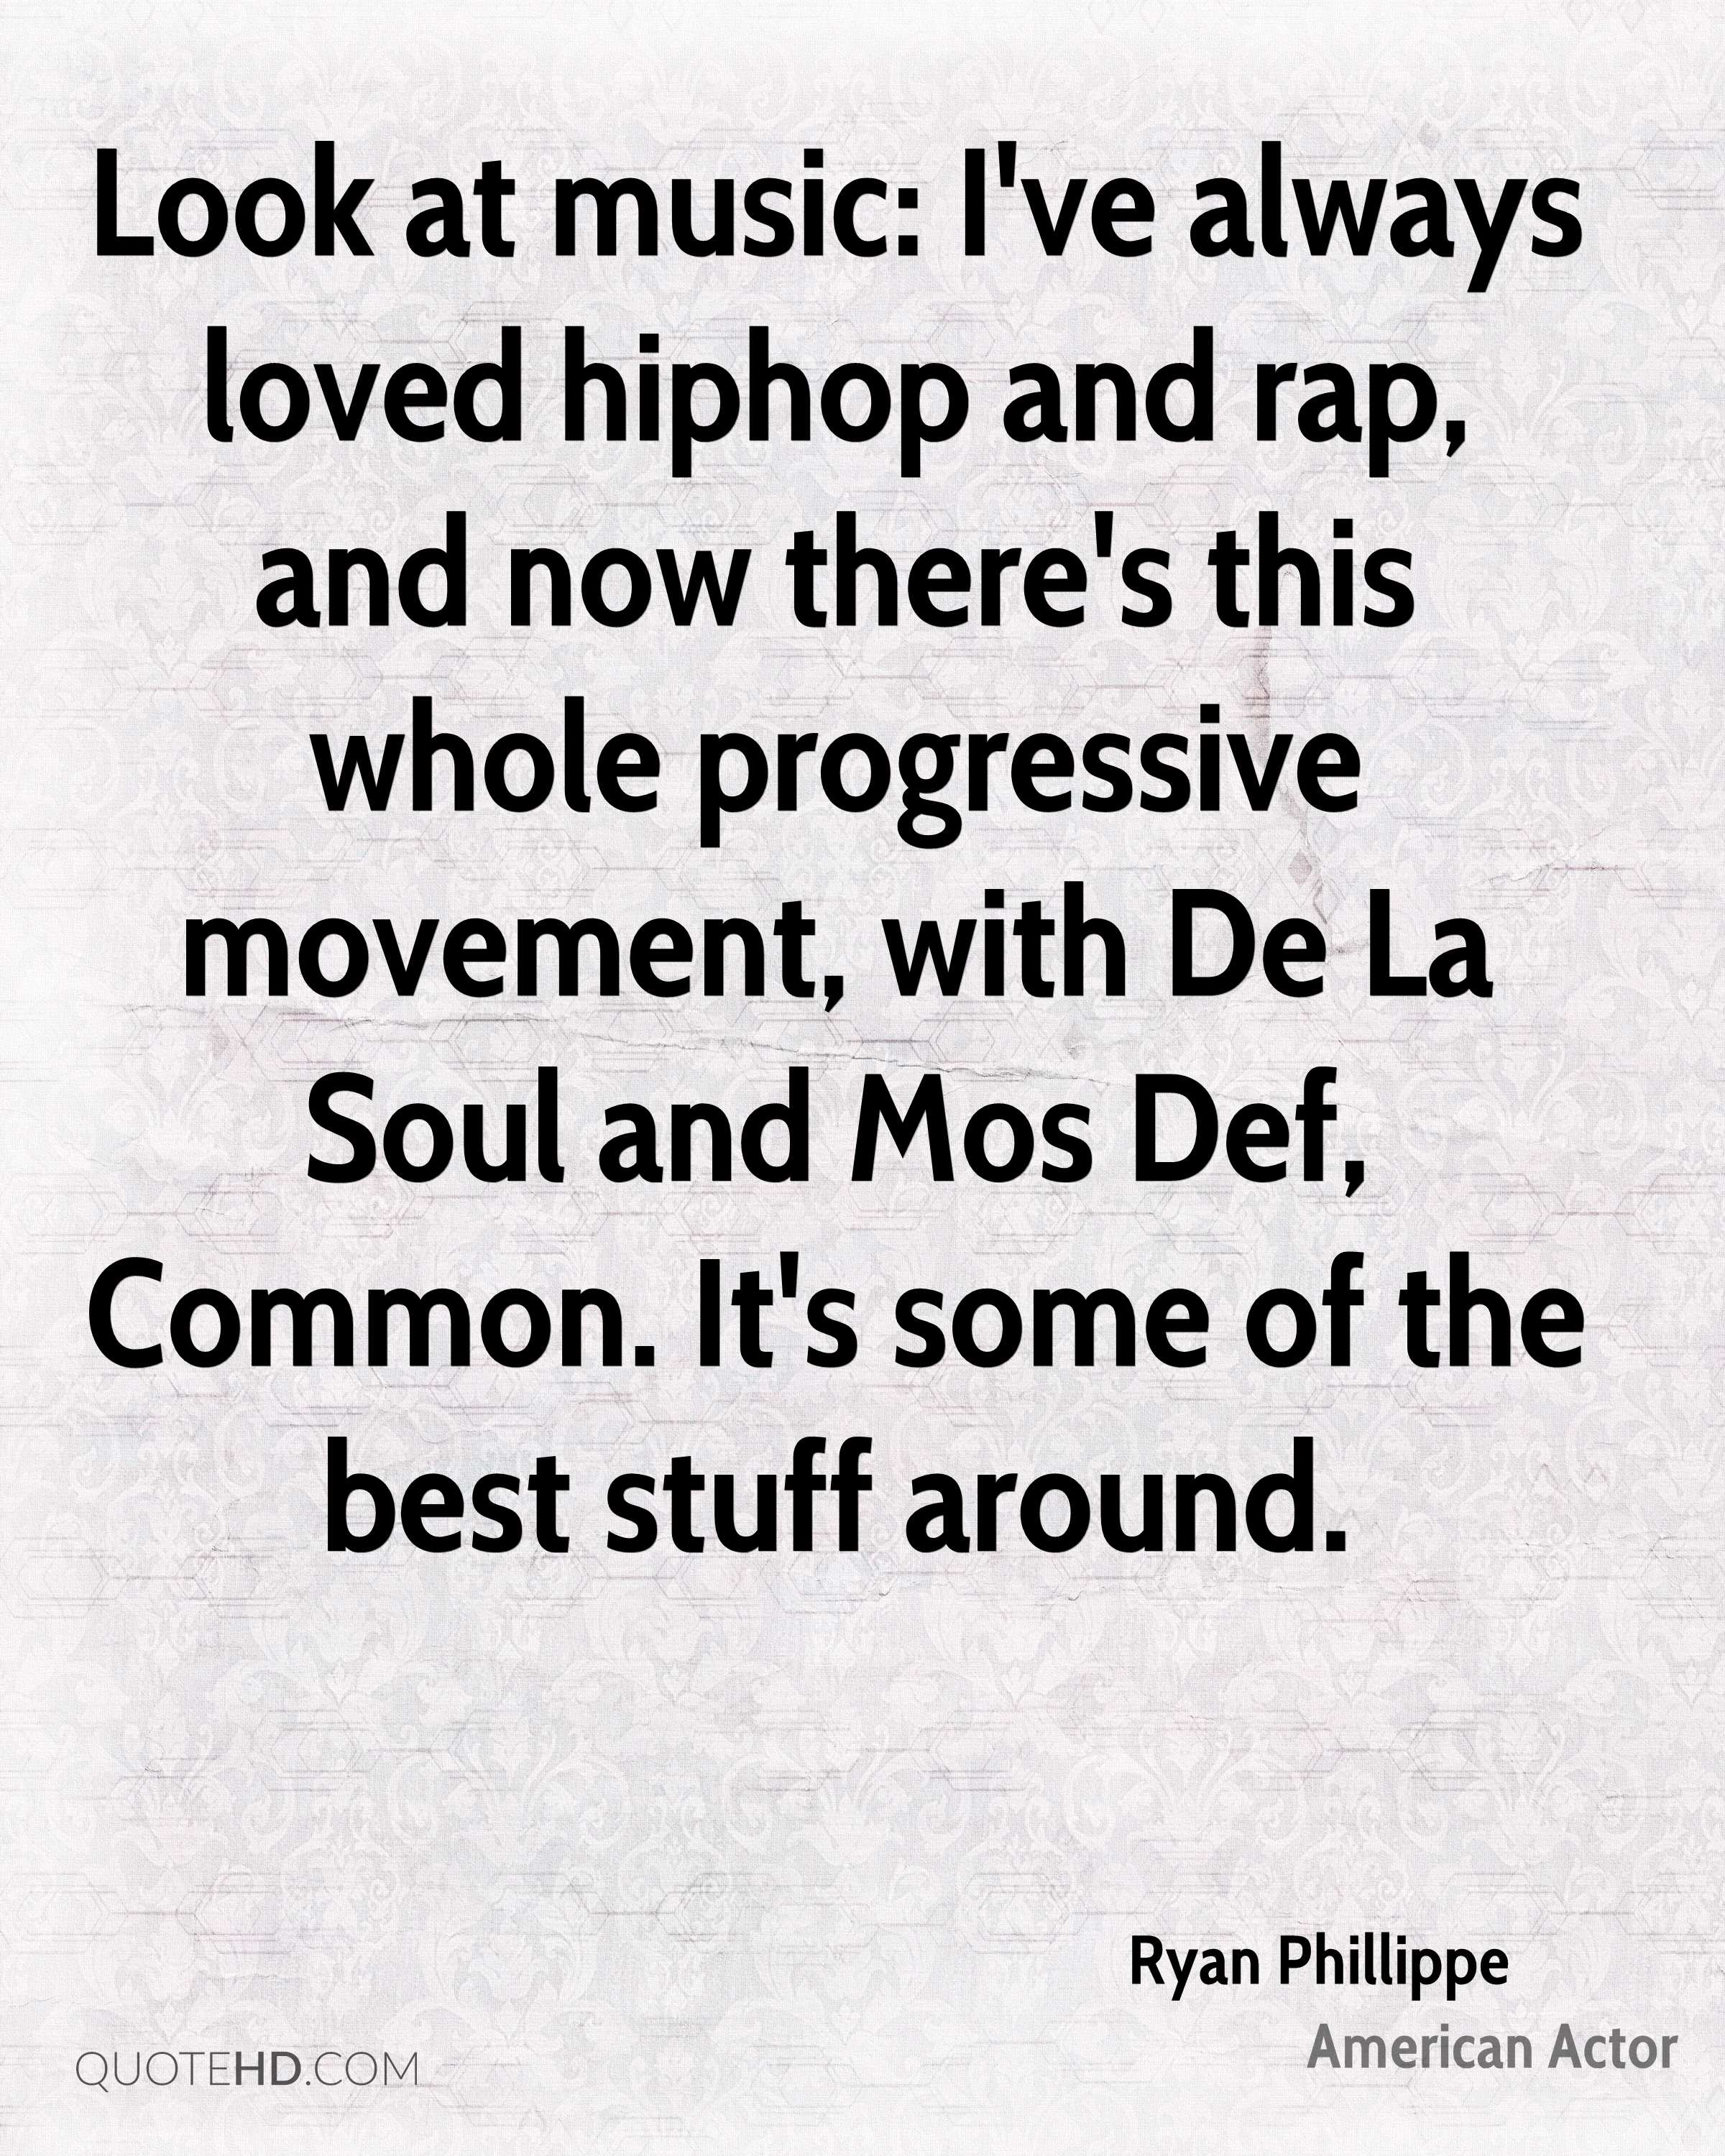 Look at music: I've always loved hiphop and rap, and now there's this whole progressive movement, with De La Soul and Mos Def, Common. It's some of the best stuff around.